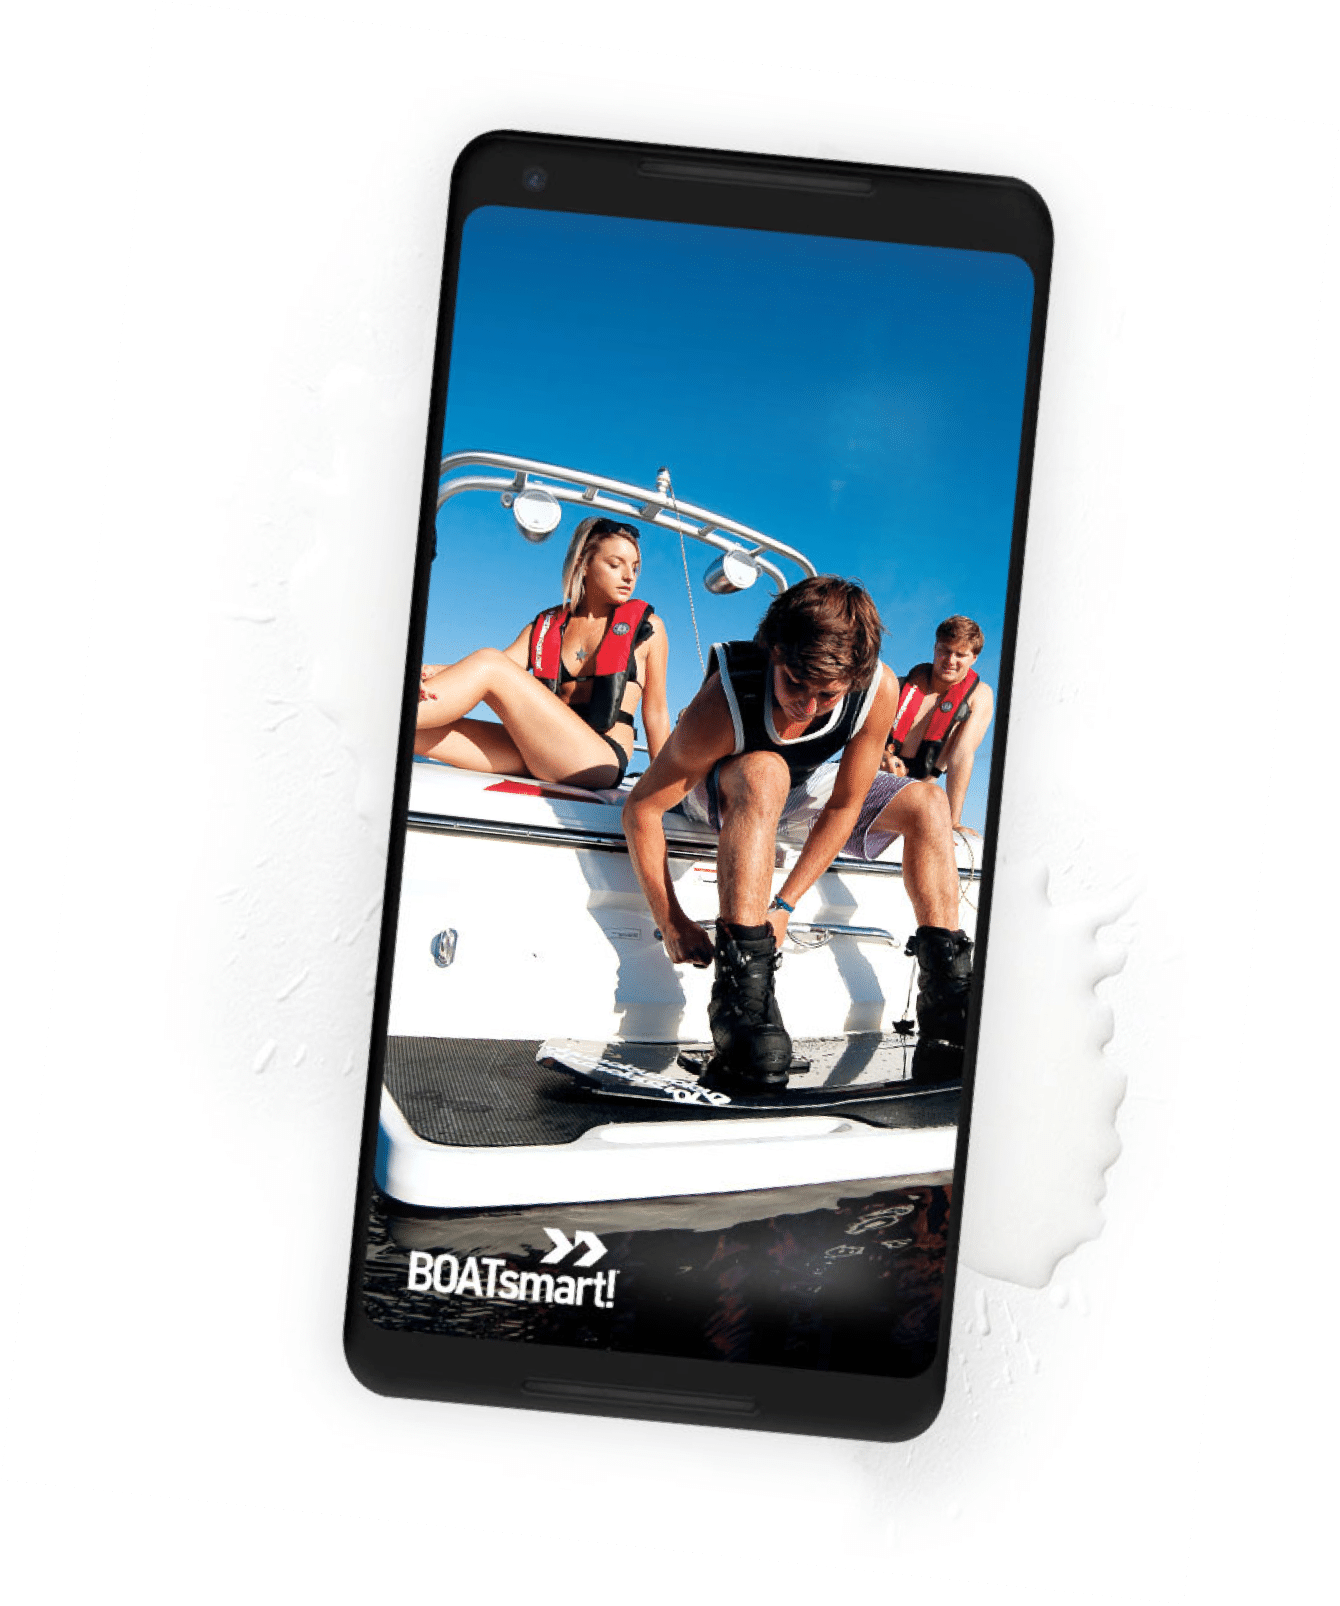 a mobile phone with an image of a wake boarder and friends